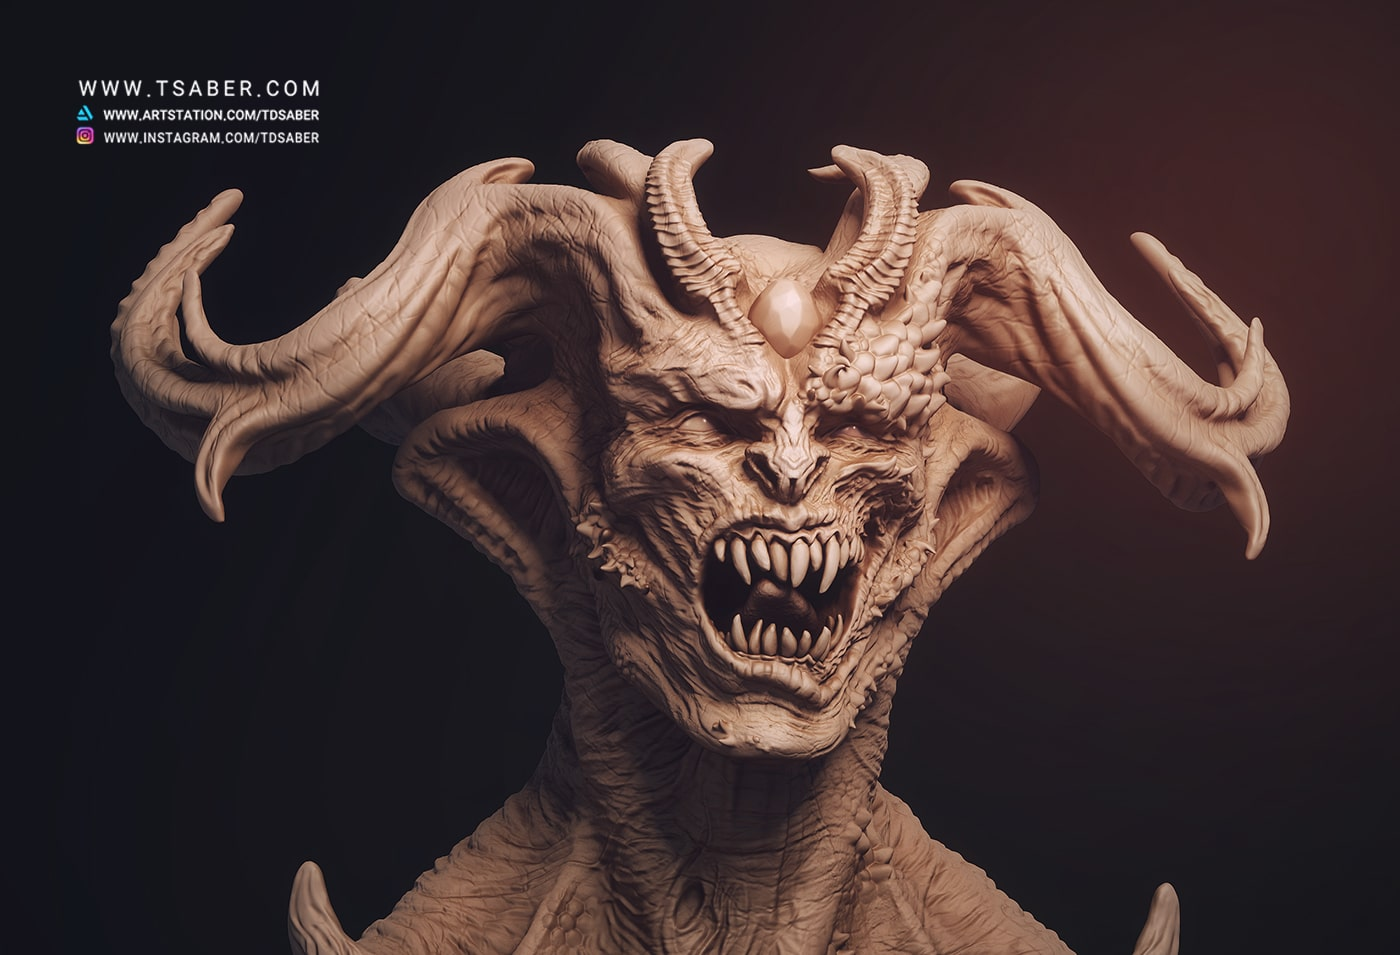 Demon Portrait Zbrush - Tsaber